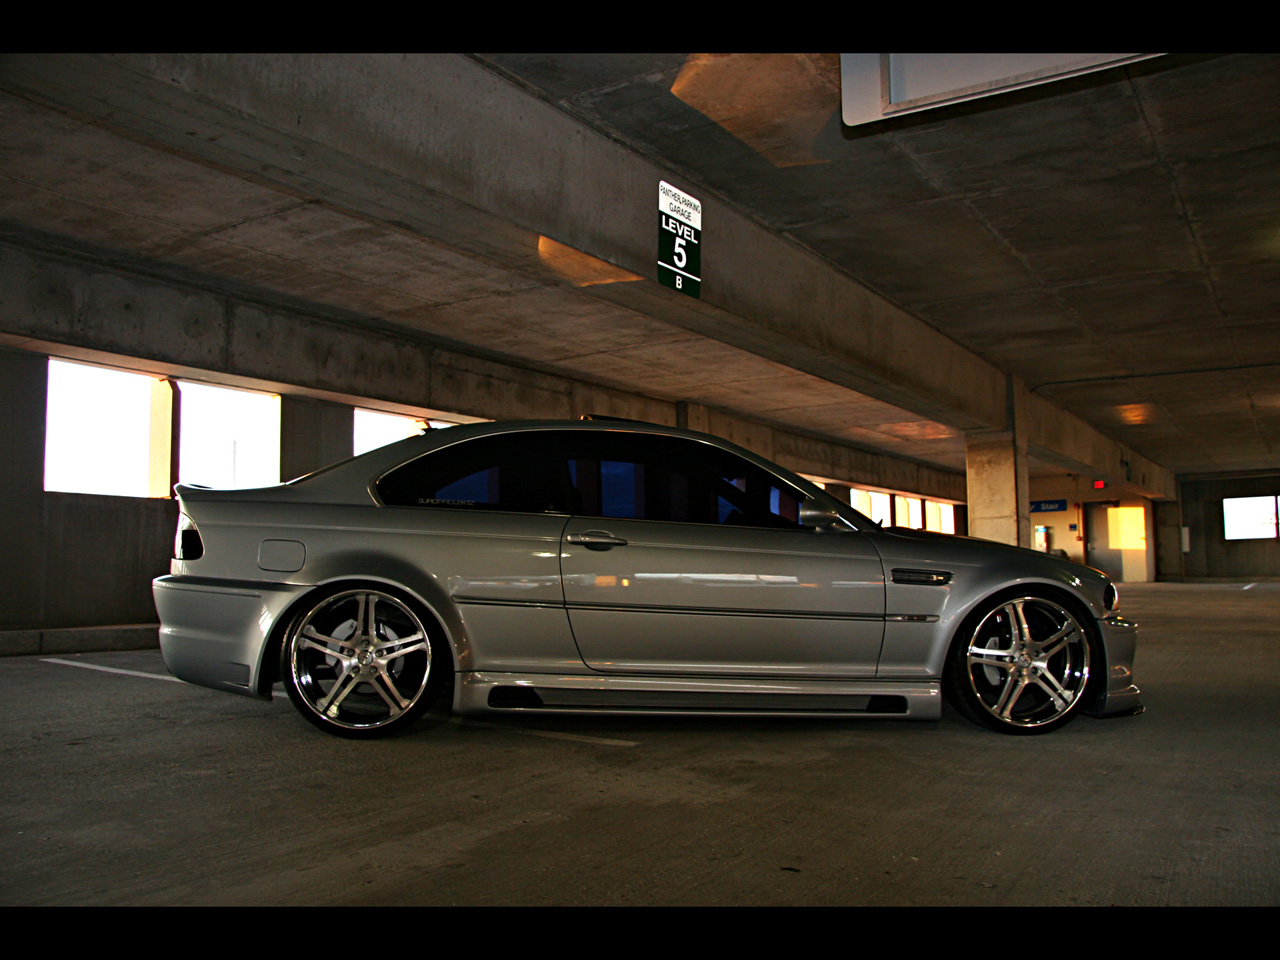 2003 BMW 325Ci Europrojektz OSS - Side - 1280x960 - Wallpaper